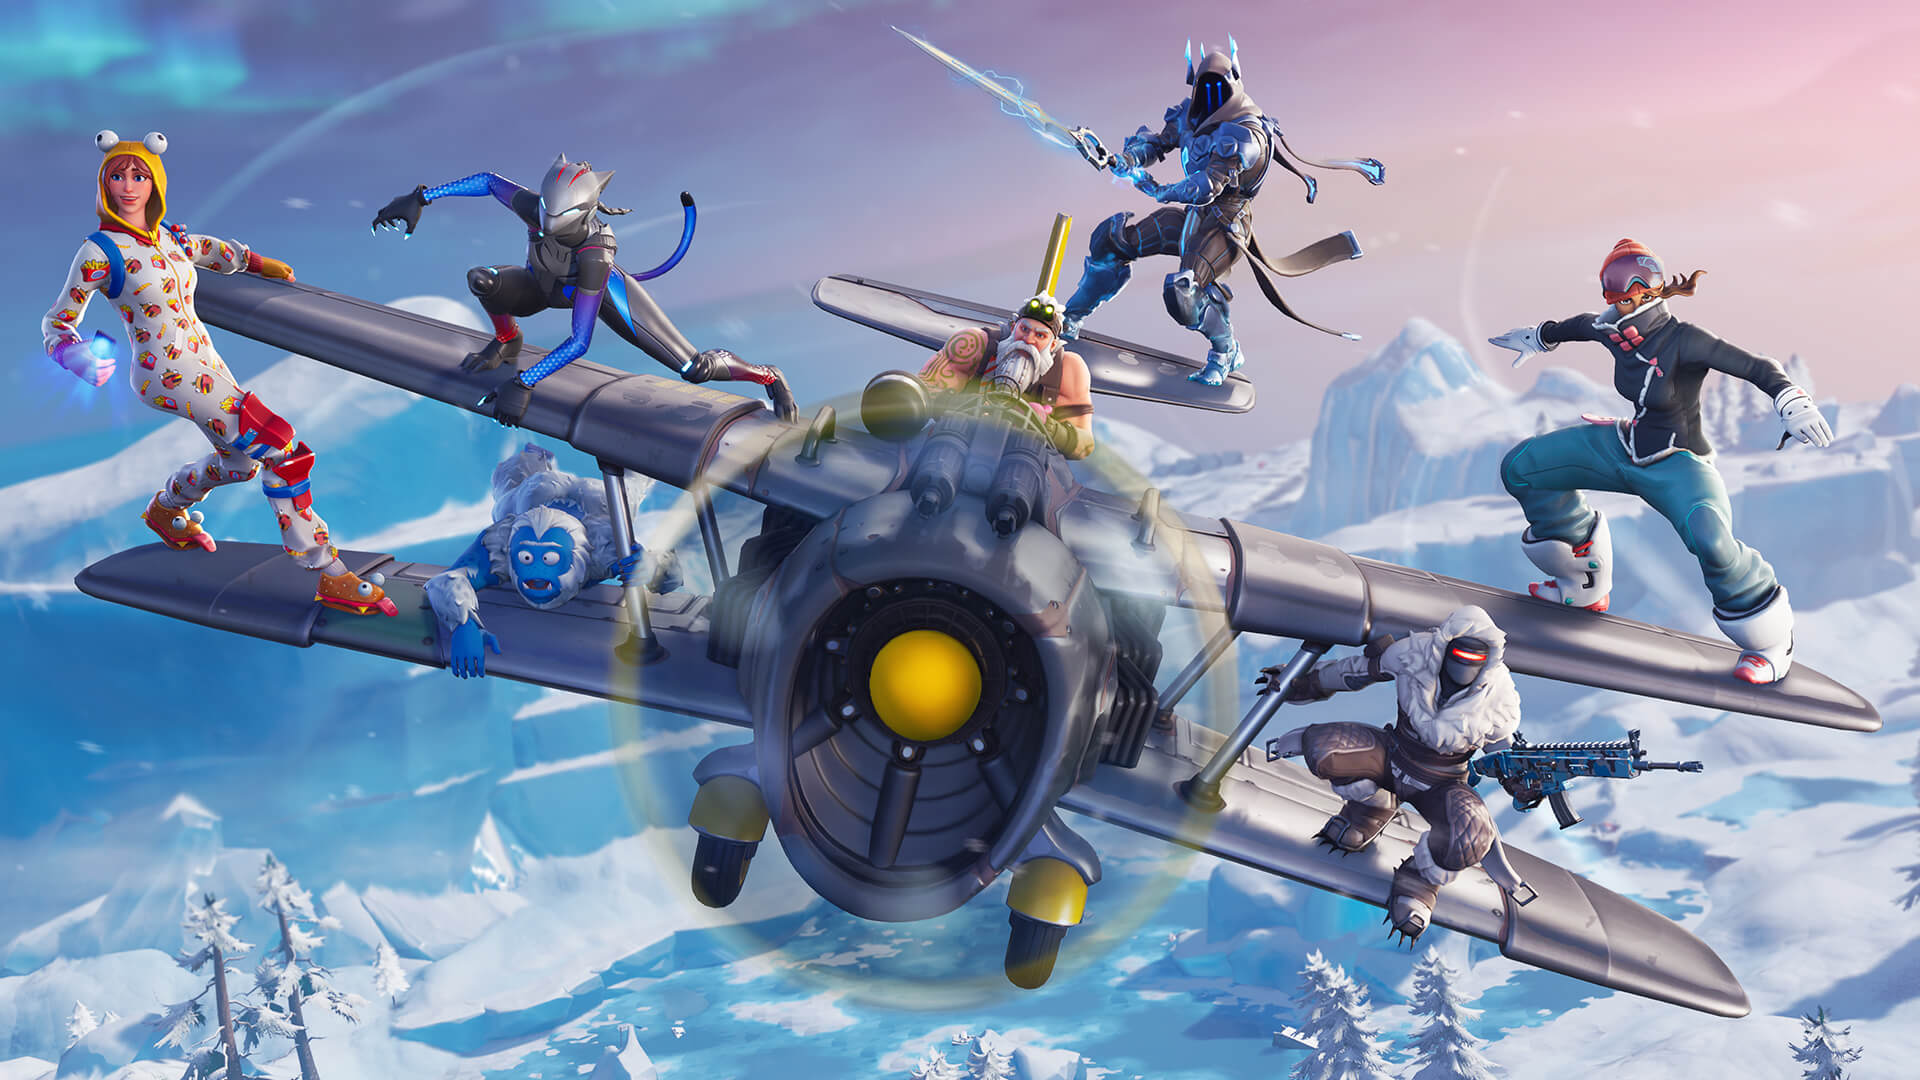 'Fortnite' Season 7 Adds New Areas, Creative Mode